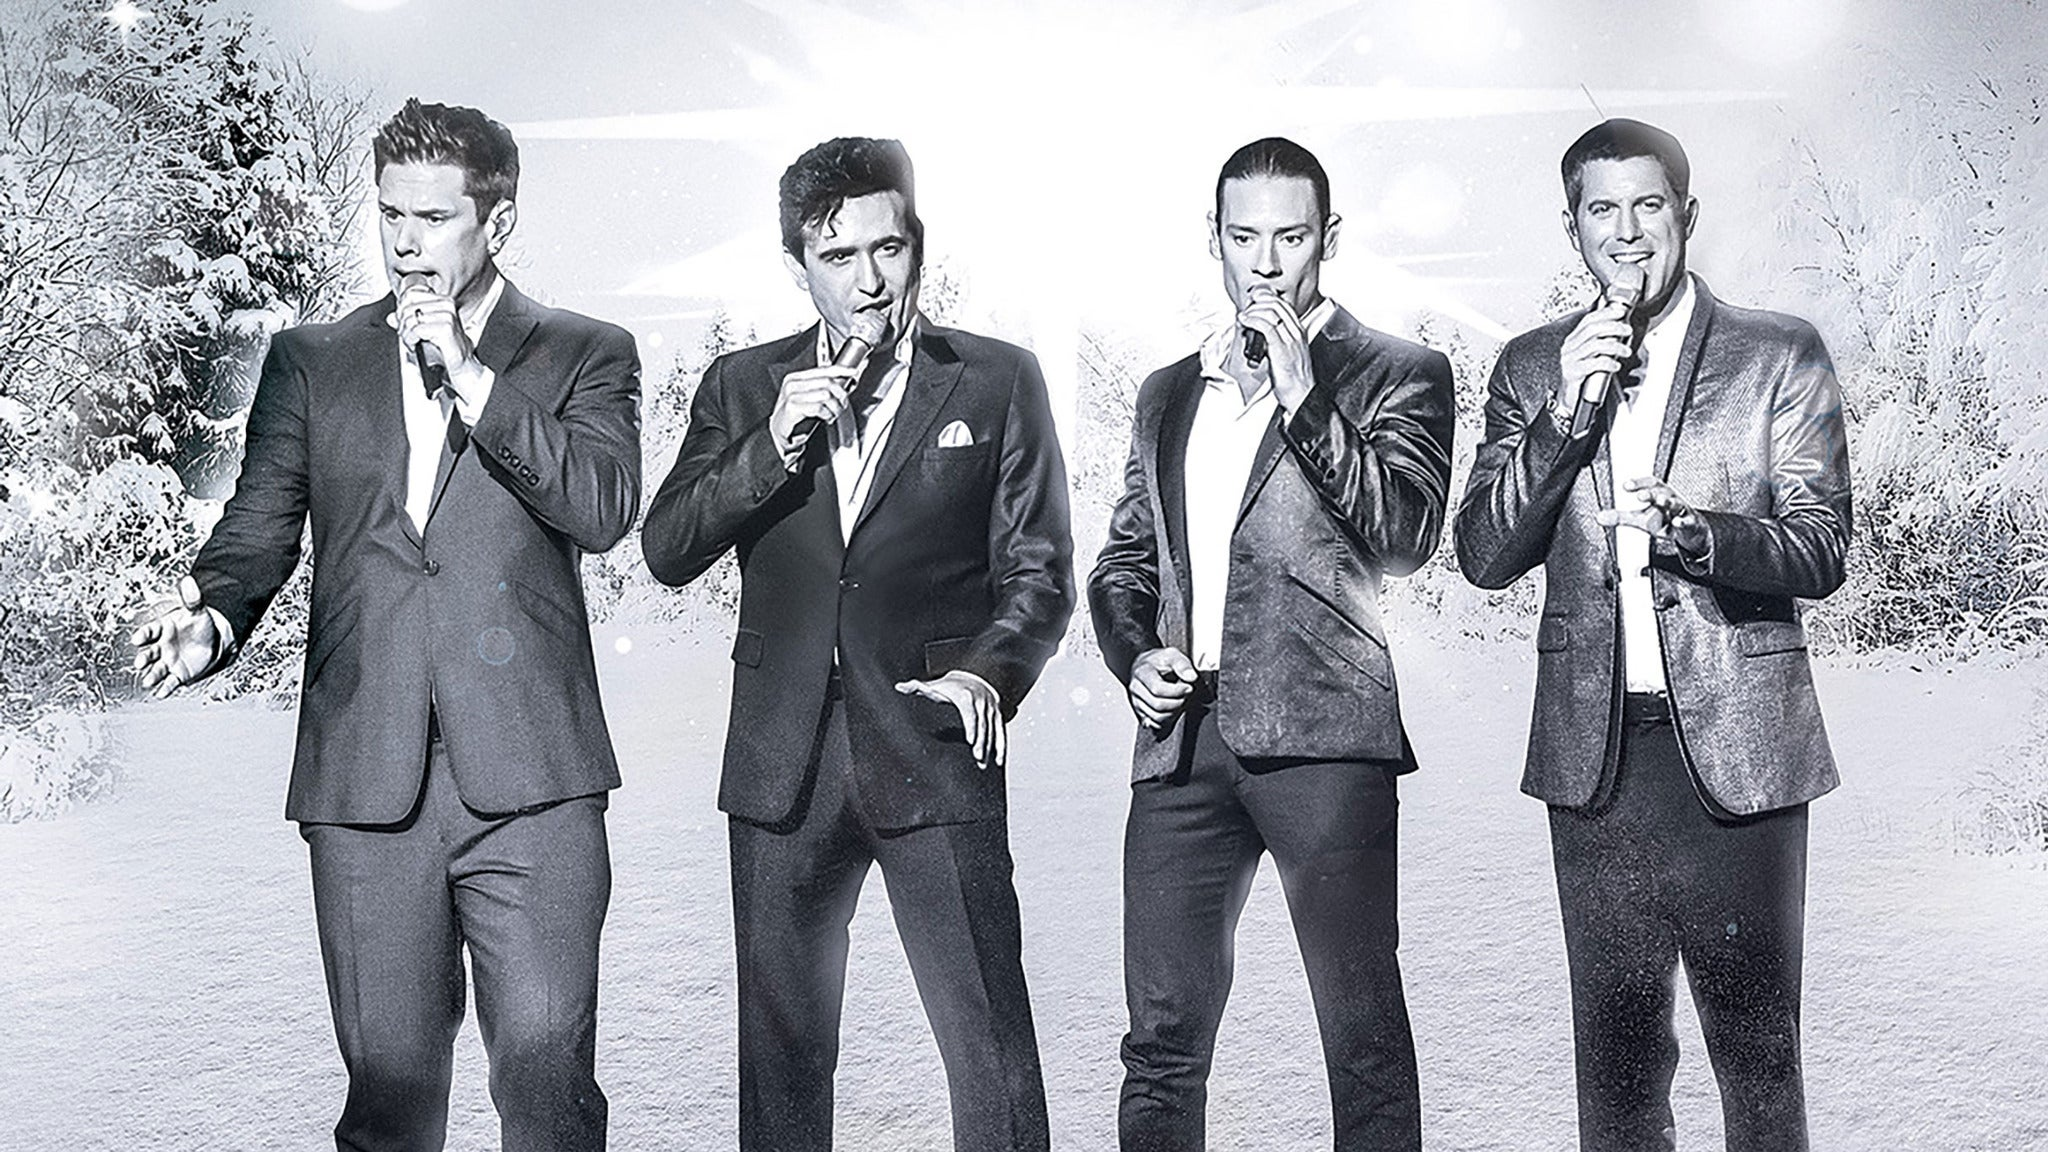 Il Divo Christmas Concert December 2020 Il Divo Tickets For 2020 Christmas With Il Divo Tour On Sale 10am